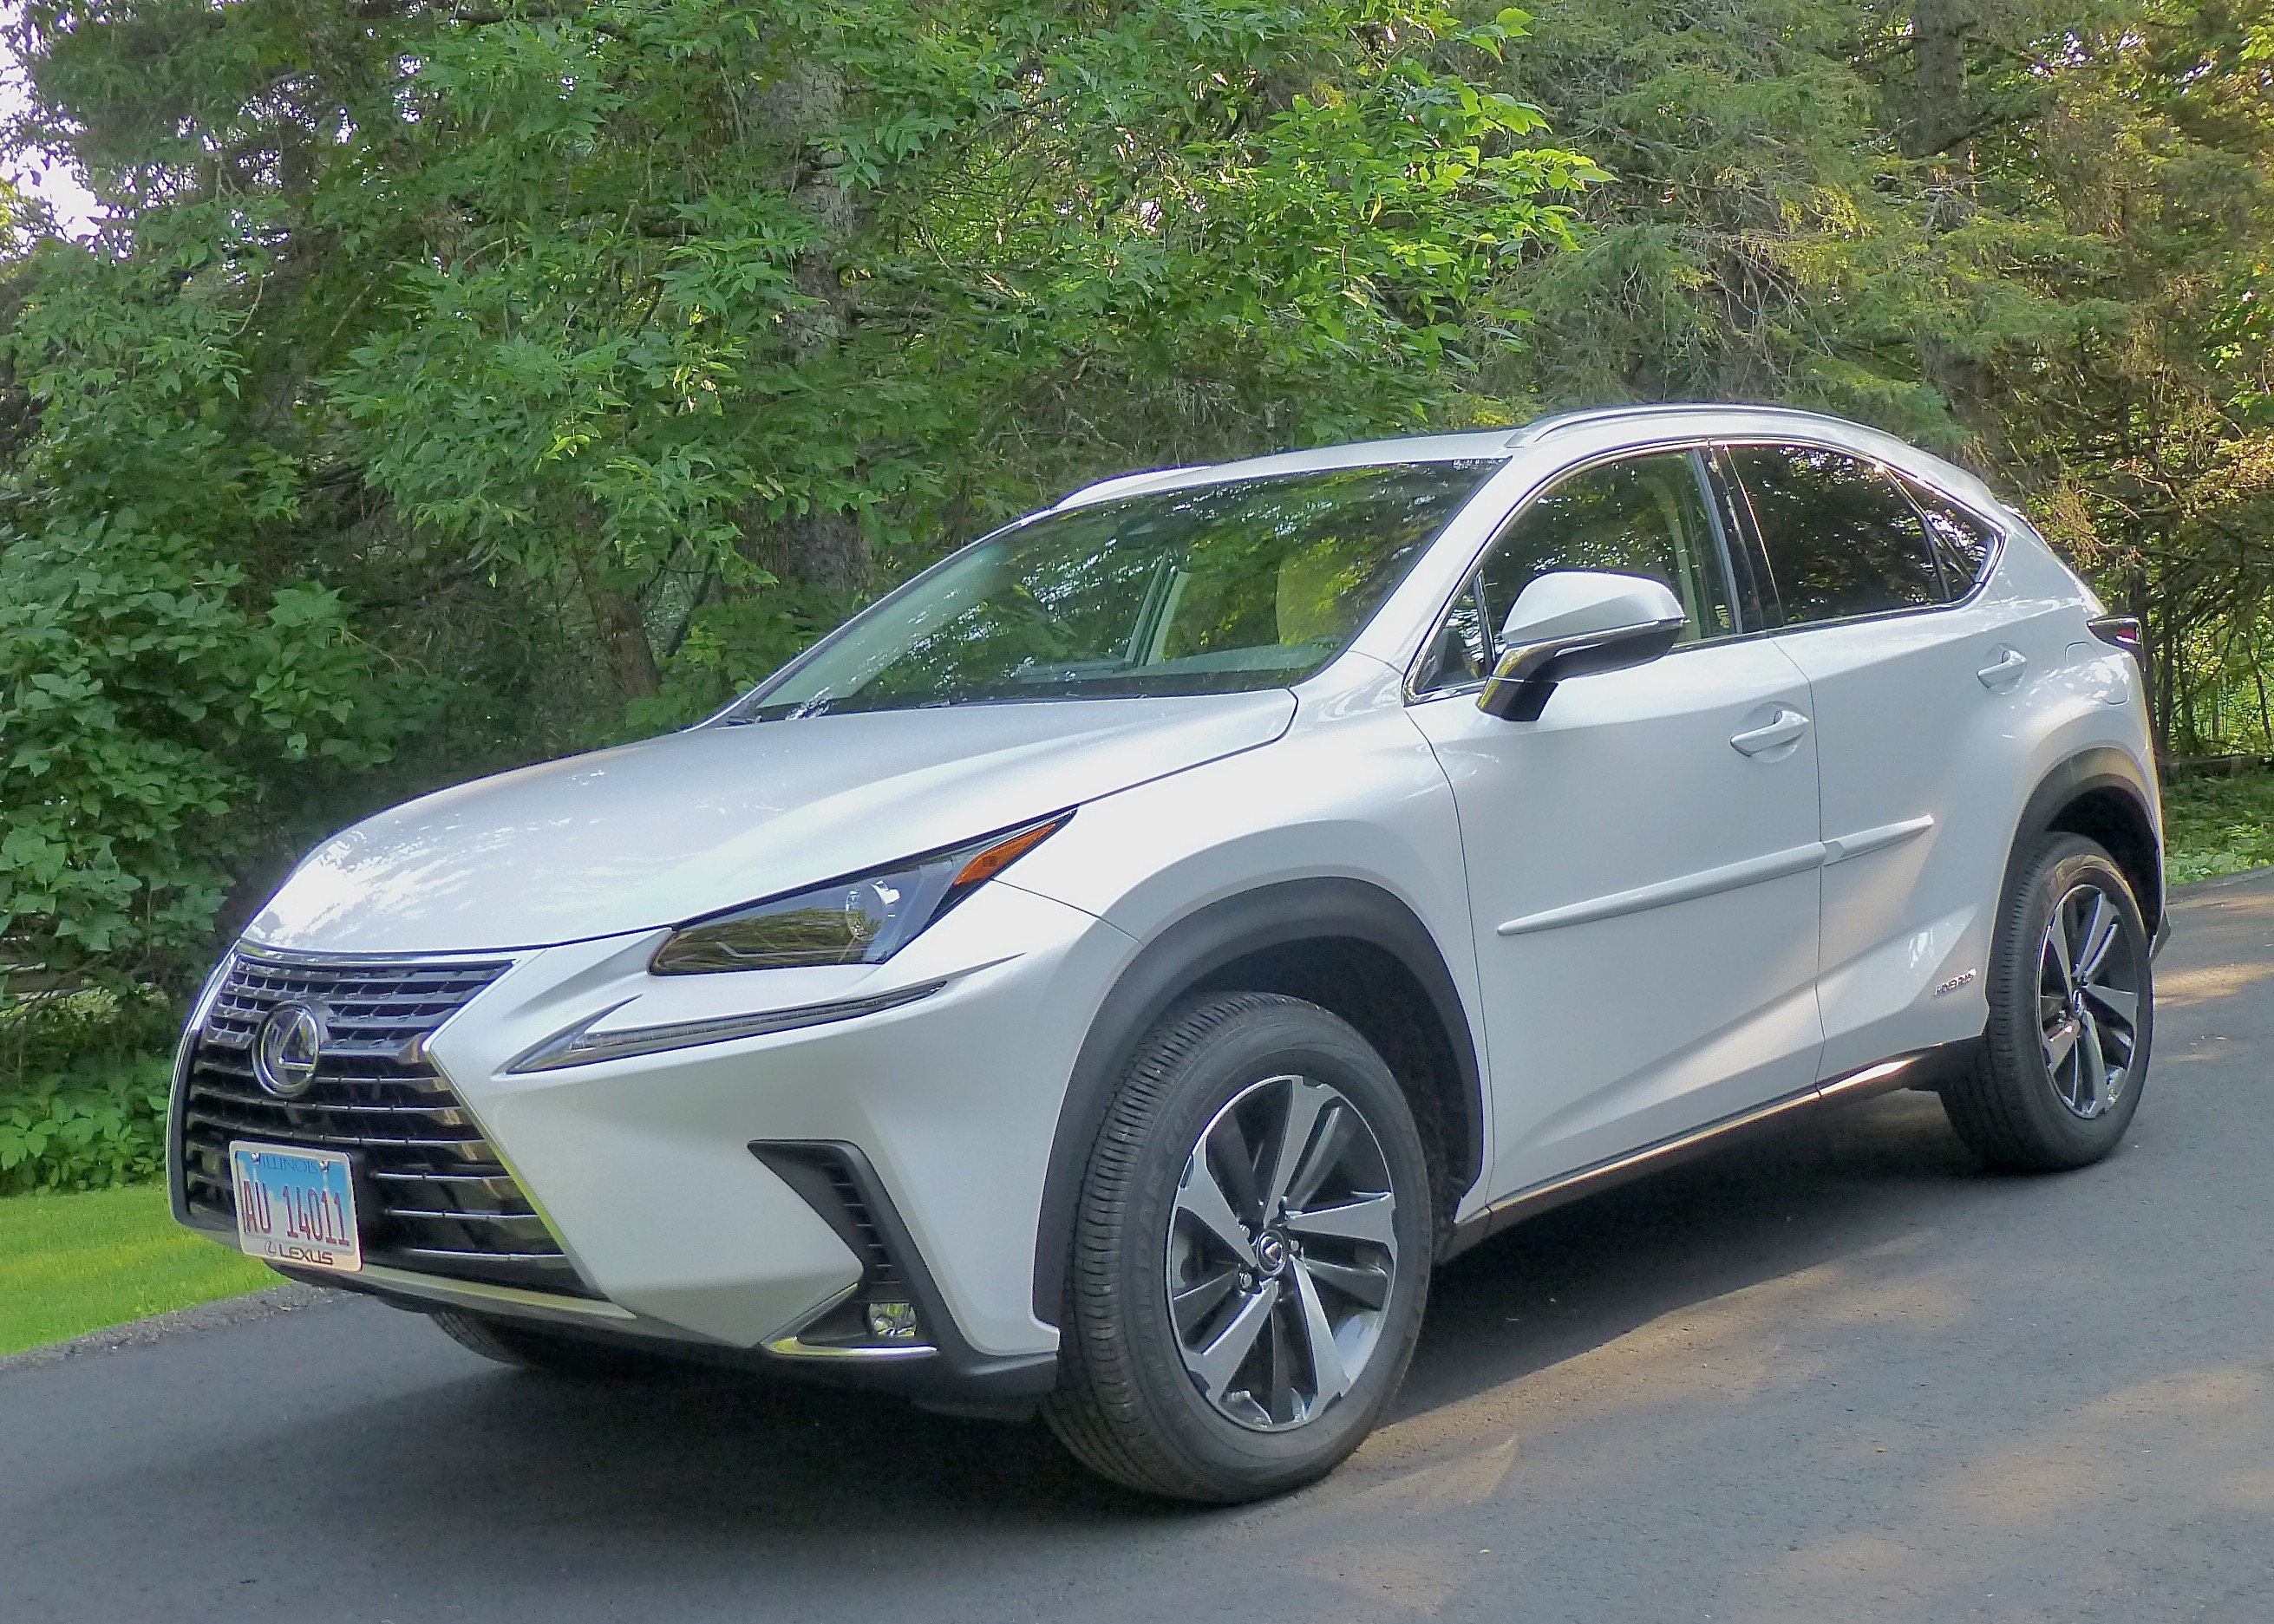 NX300h wears new Lexus signature styling well, adding sportiness.